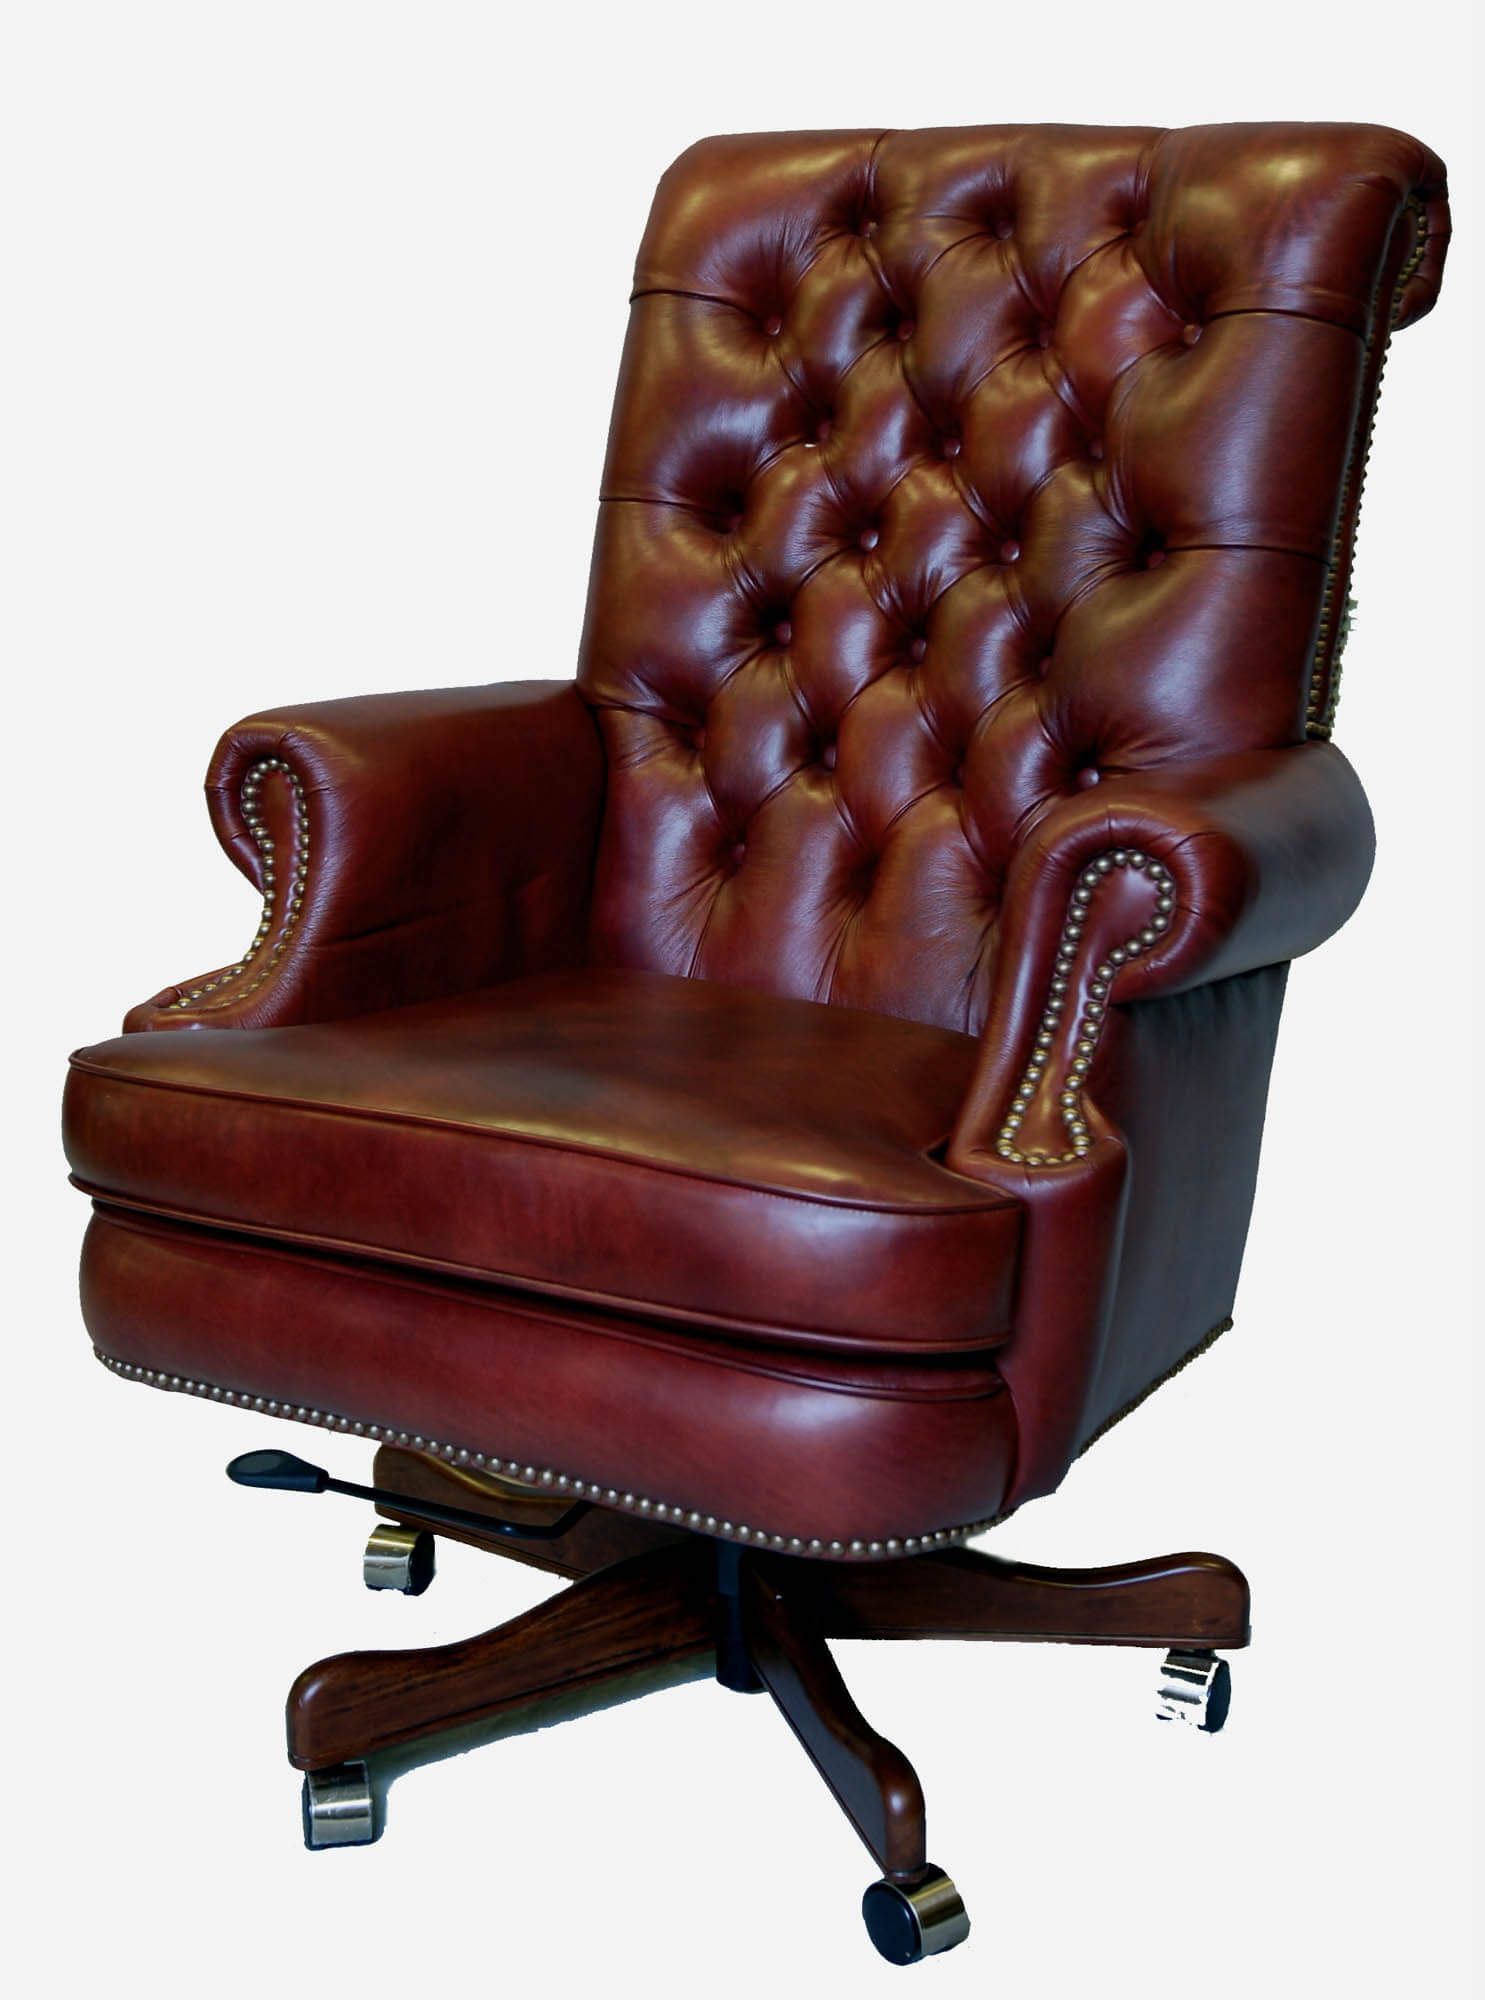 executive chairs manufacturers and dealers in new delhi